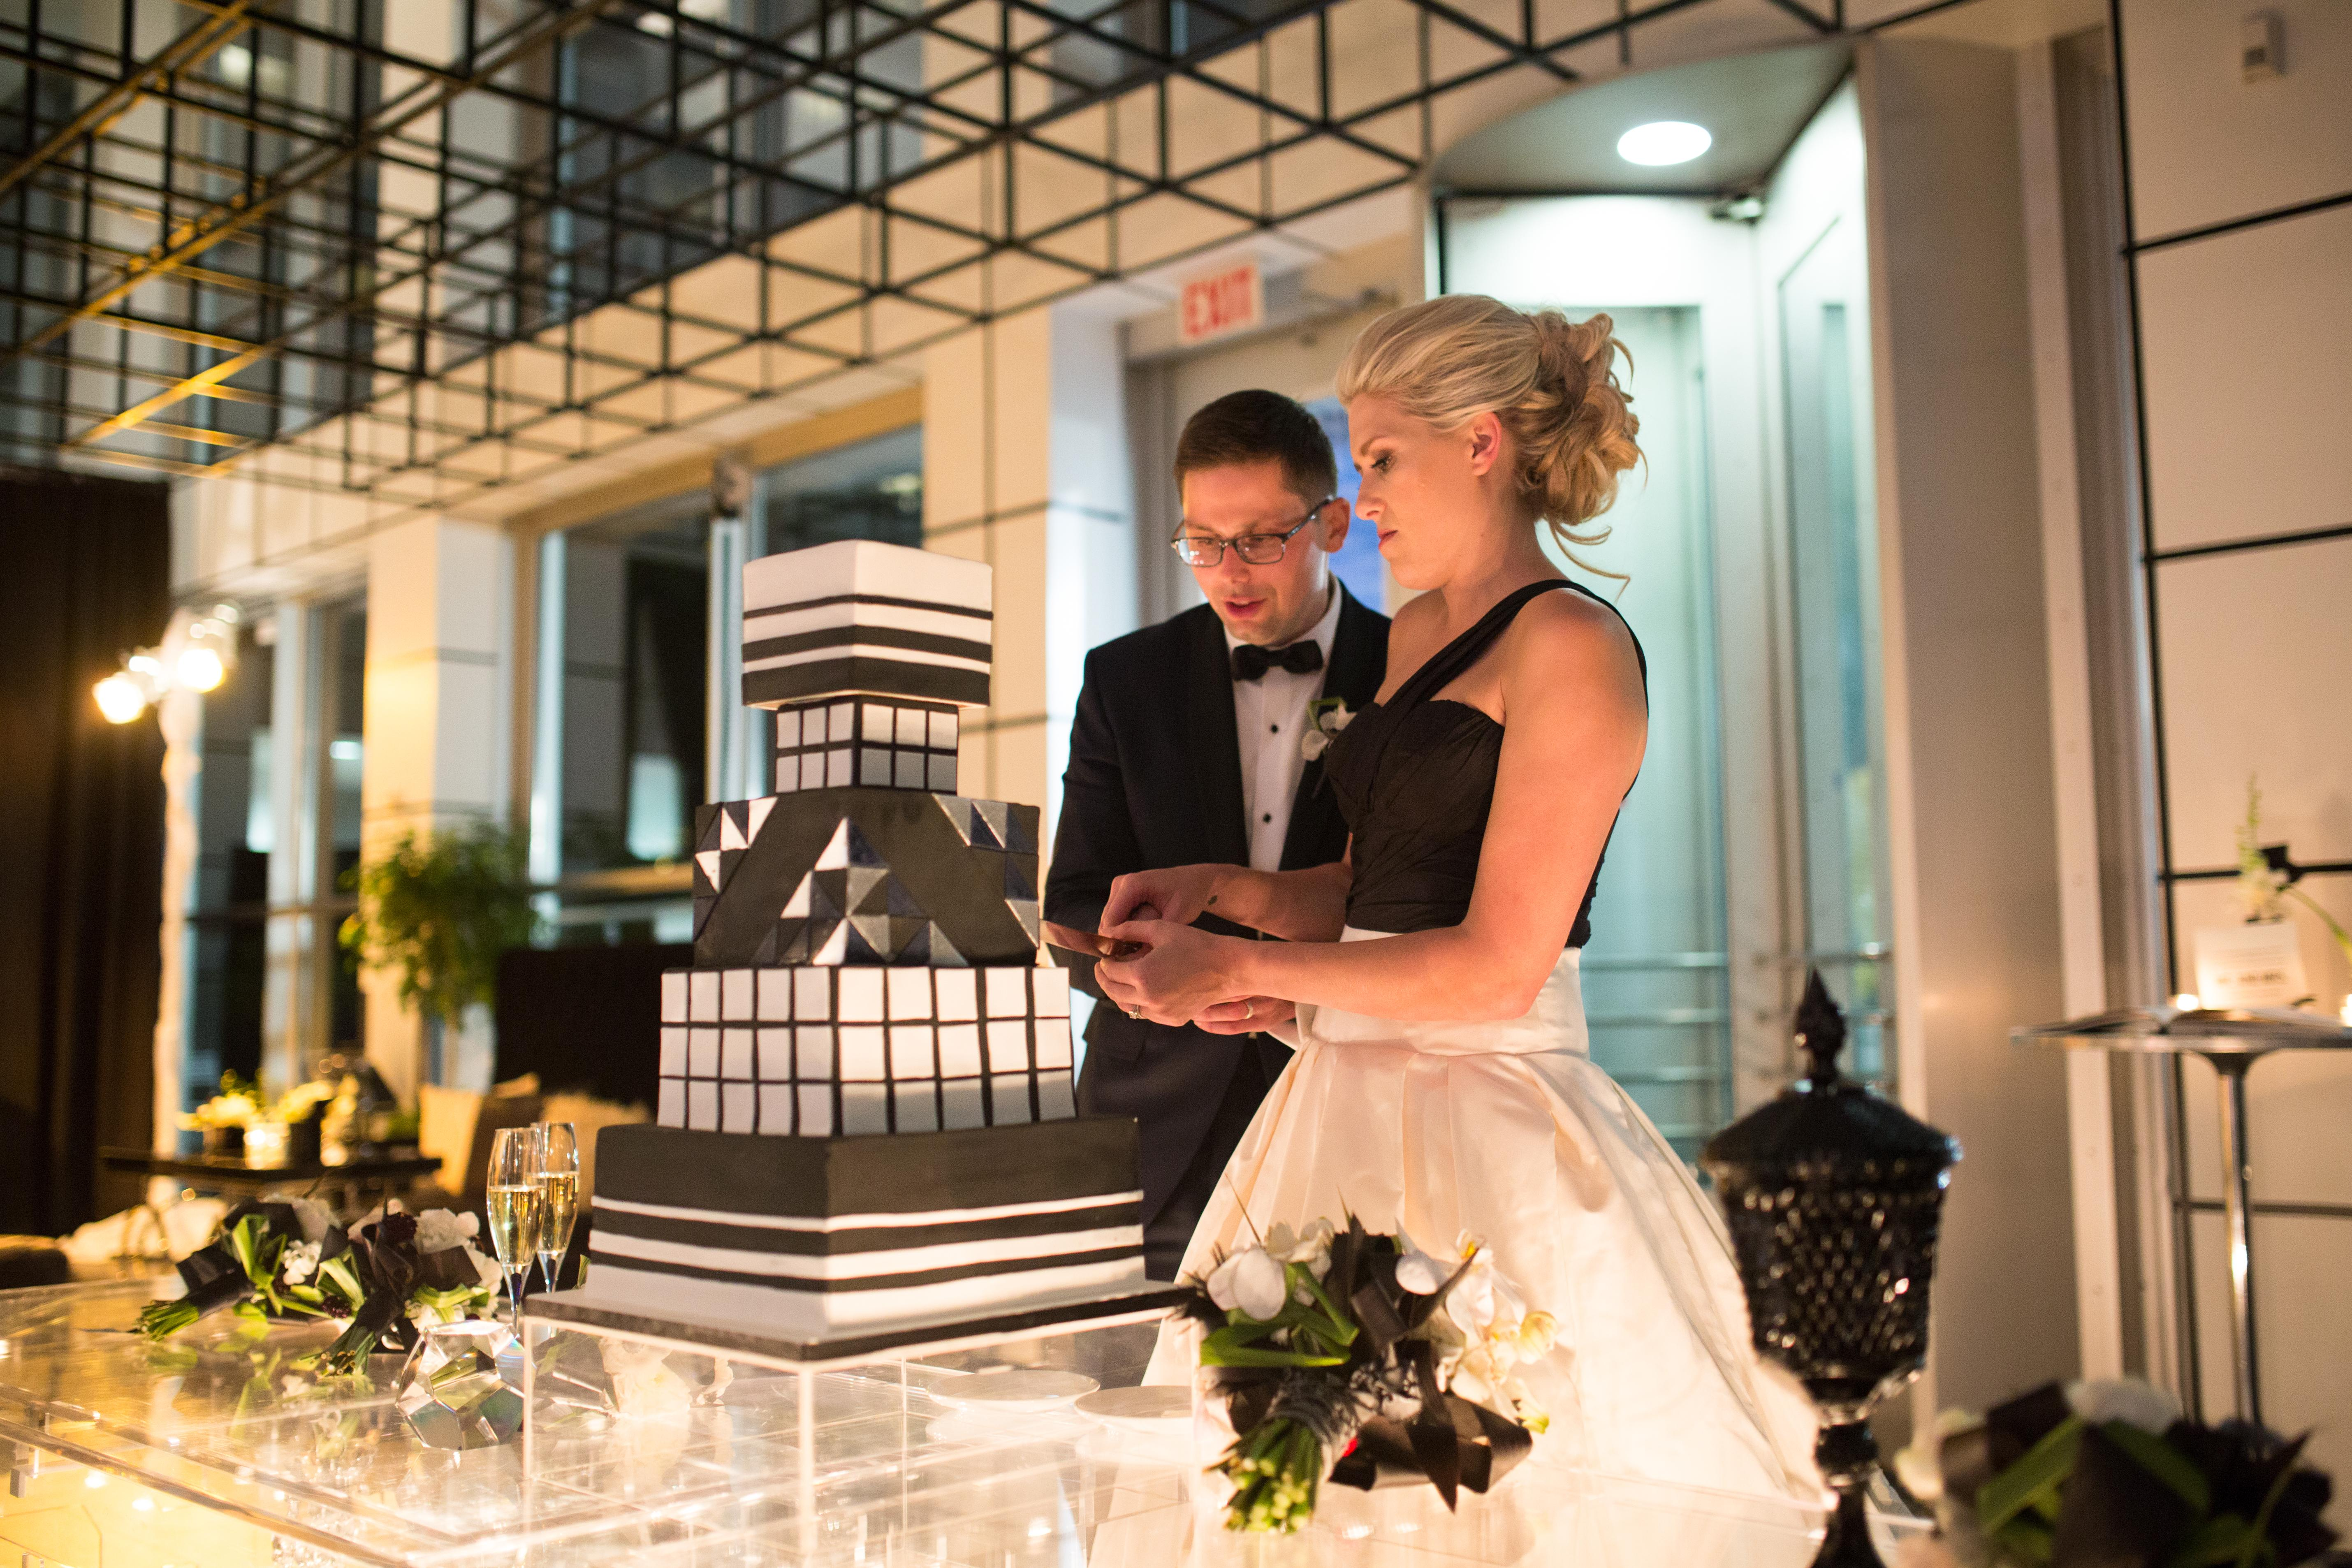 A light-skinned bride in a black-and-white gown stands next to a groom in a black tuxedo. they cut into a black-and-white, many-layered geometric cake that is similar to a black cube-like structure above them.